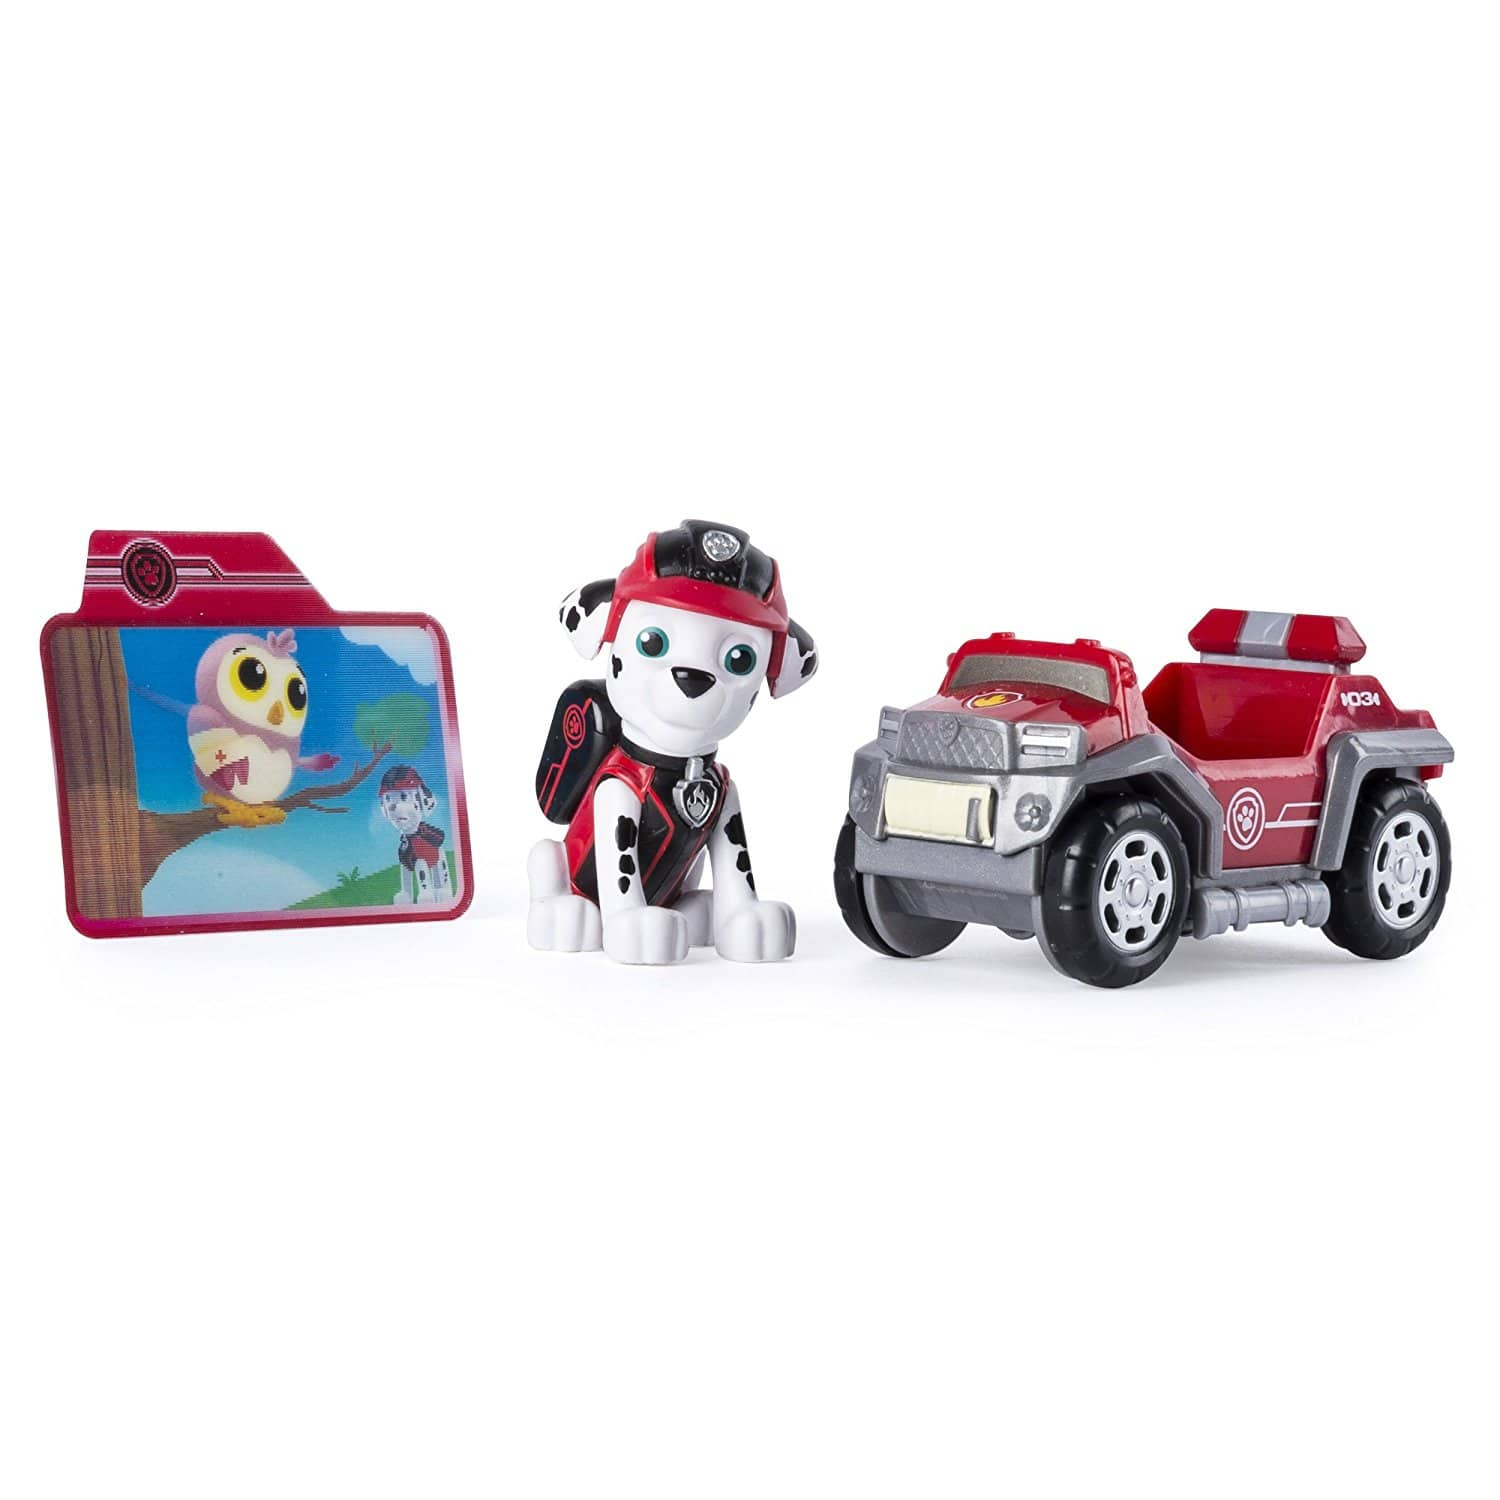 Paw Patrol Mission Paw - Marshall's Rescue Rover - Figure and Vehicle  Reduced price $7.49  (25% off) @amazon